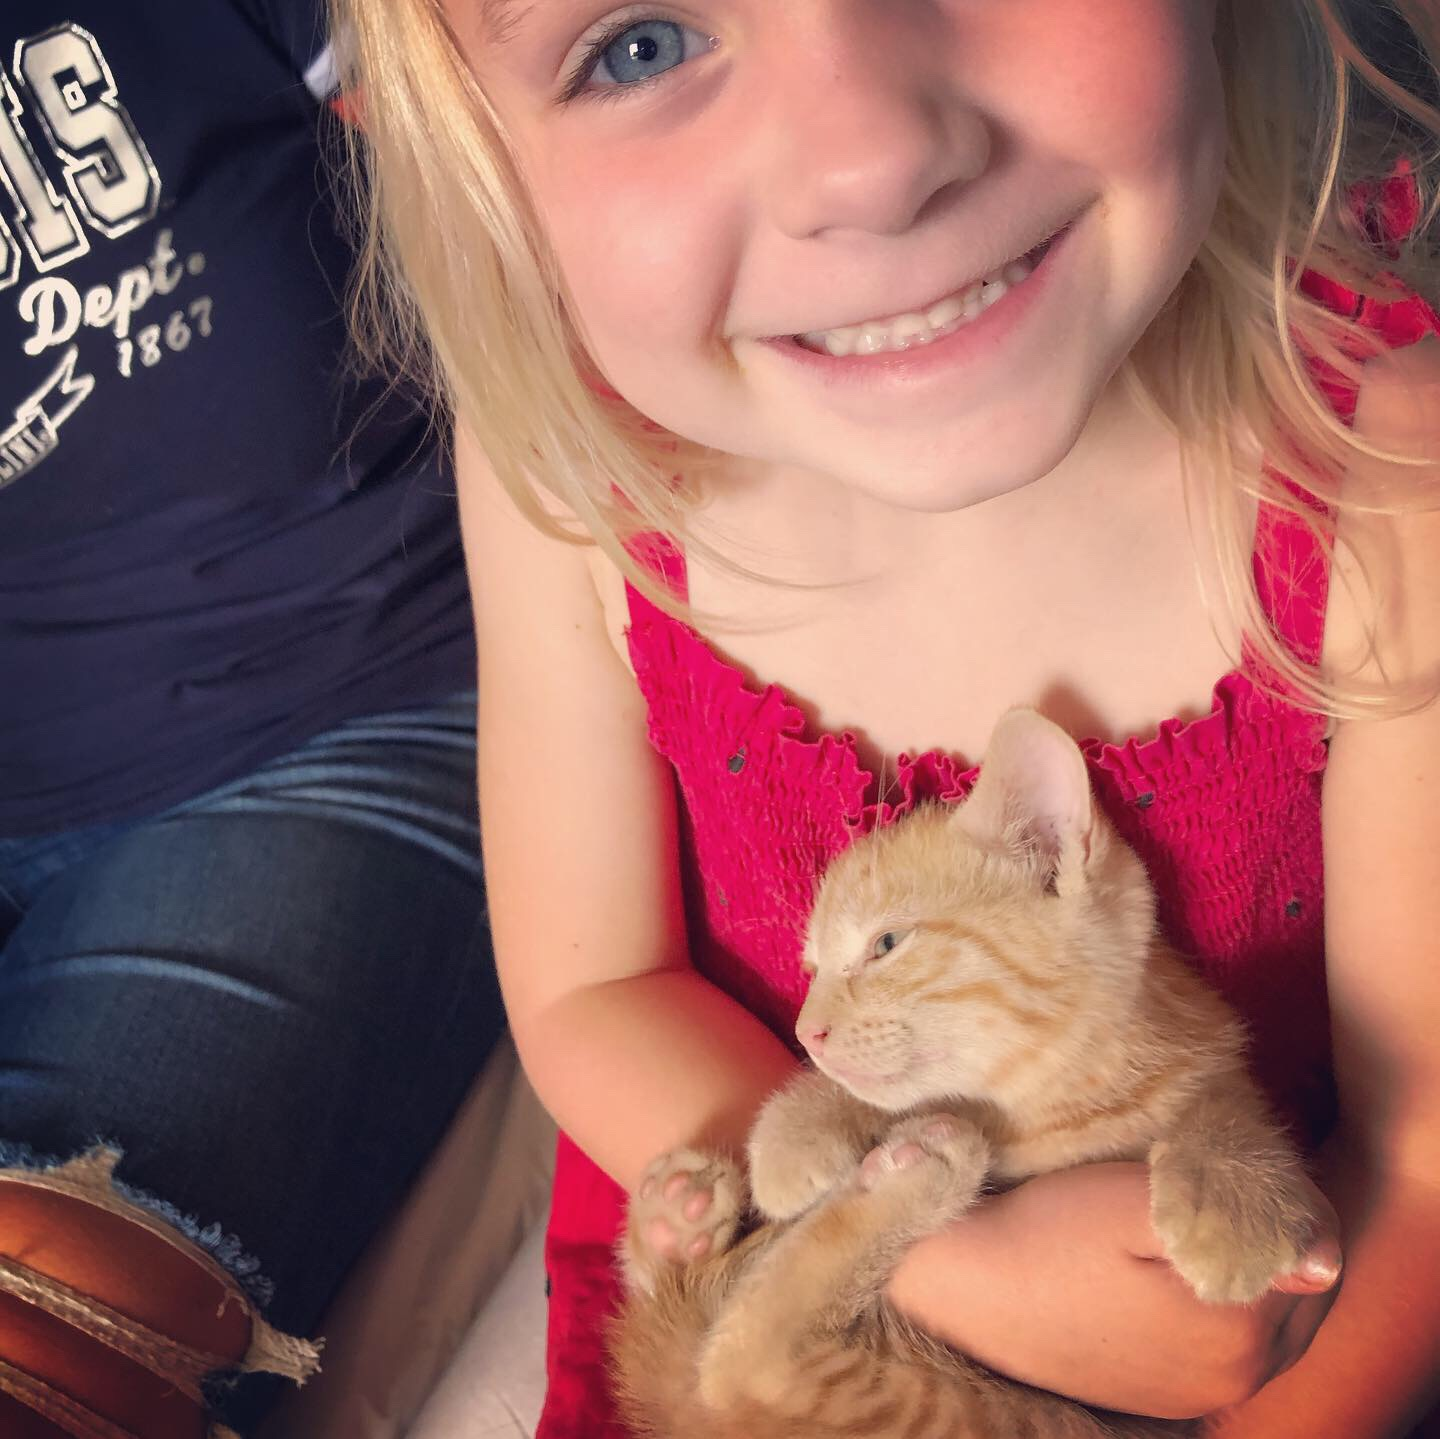 Harper and Kitten